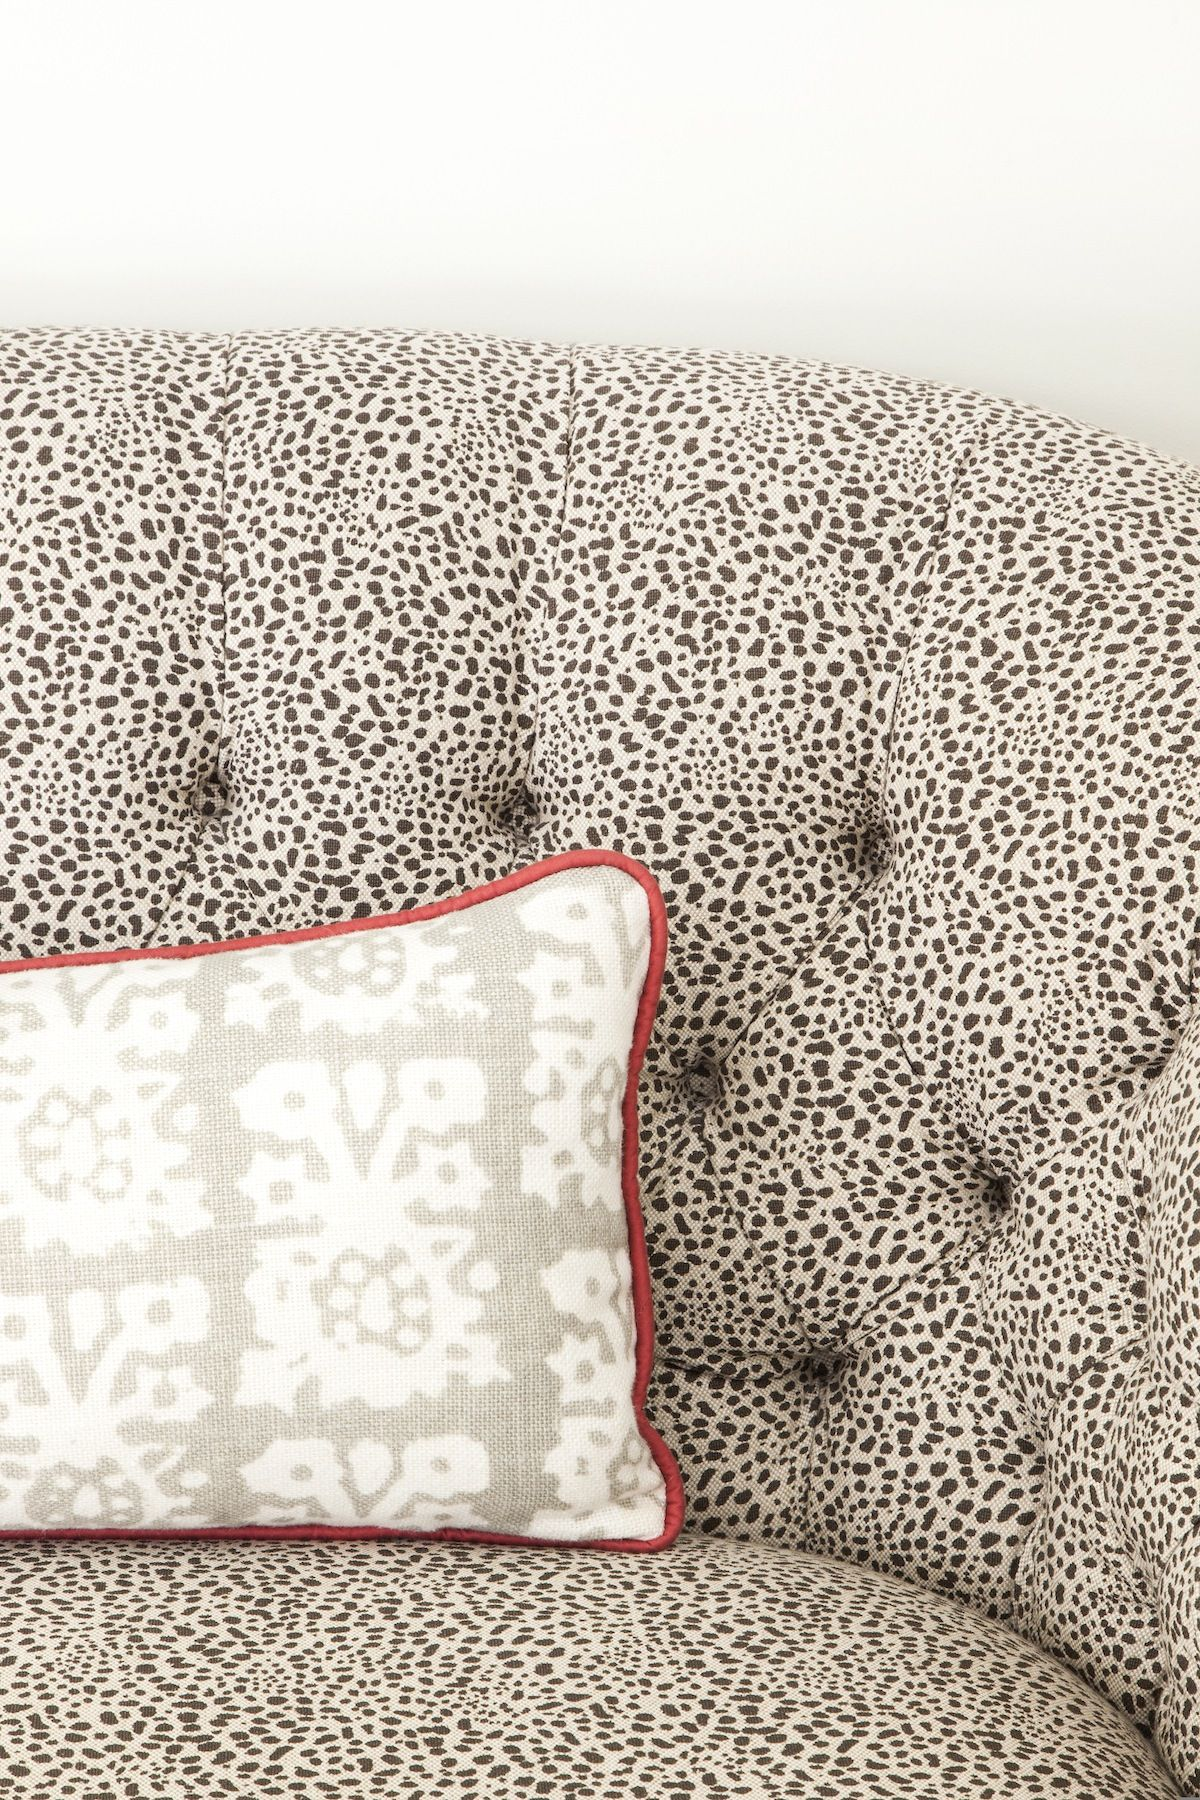 #pattern, #sofa, #tufted, #black-and-white, #fabric, #pillow